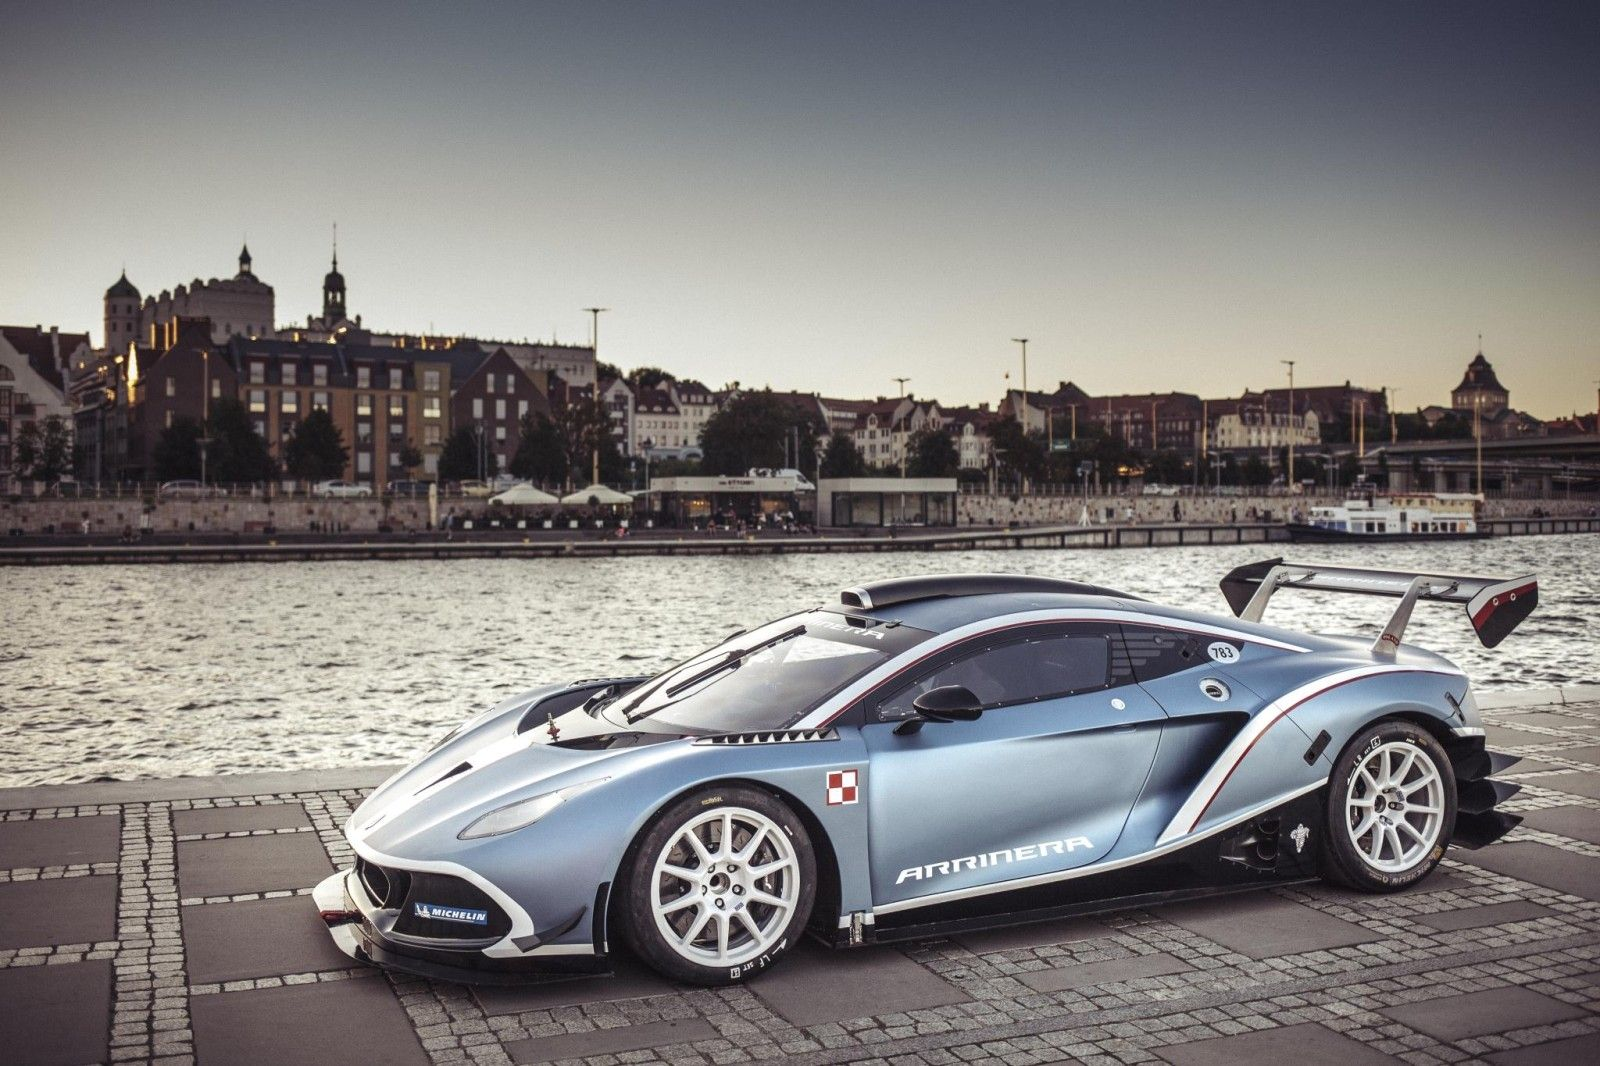 The Arrinera Hussarya Gt Takes A Road Trip Across Poland Super Cars Expensive Sports Cars Sports Cars Luxury